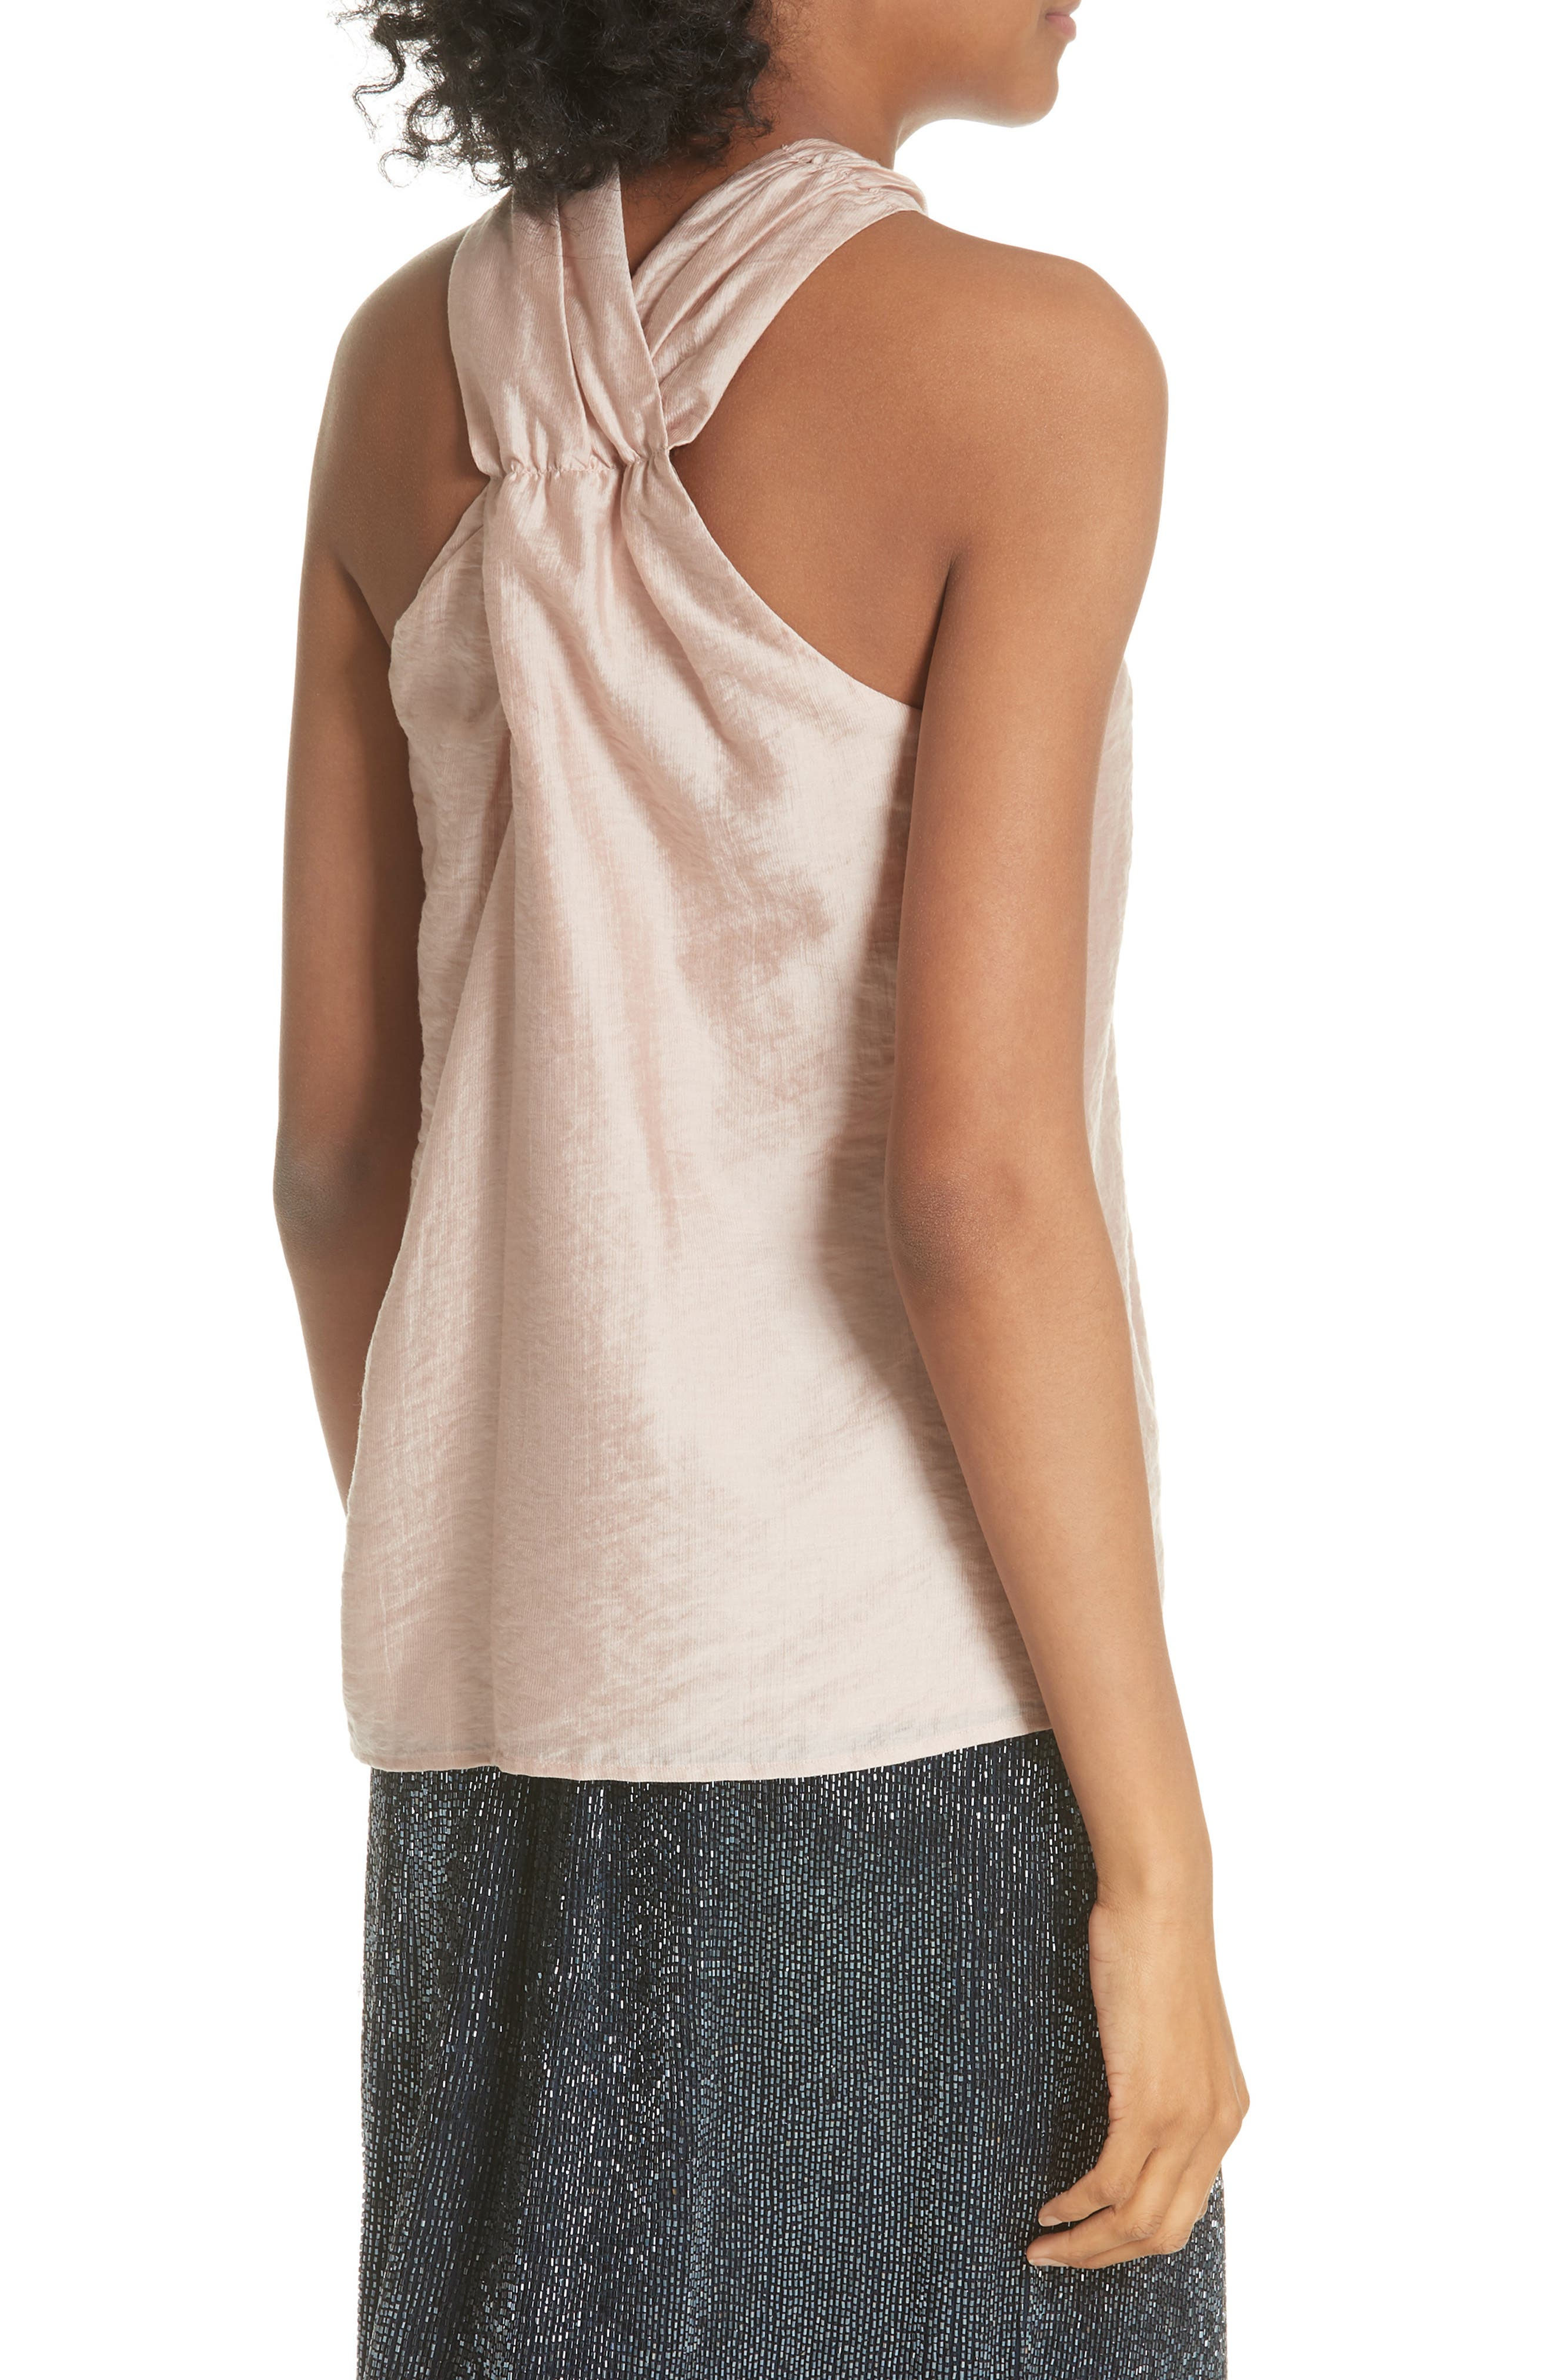 Earldena Top,                             Alternate thumbnail 3, color,                             Blush Sand